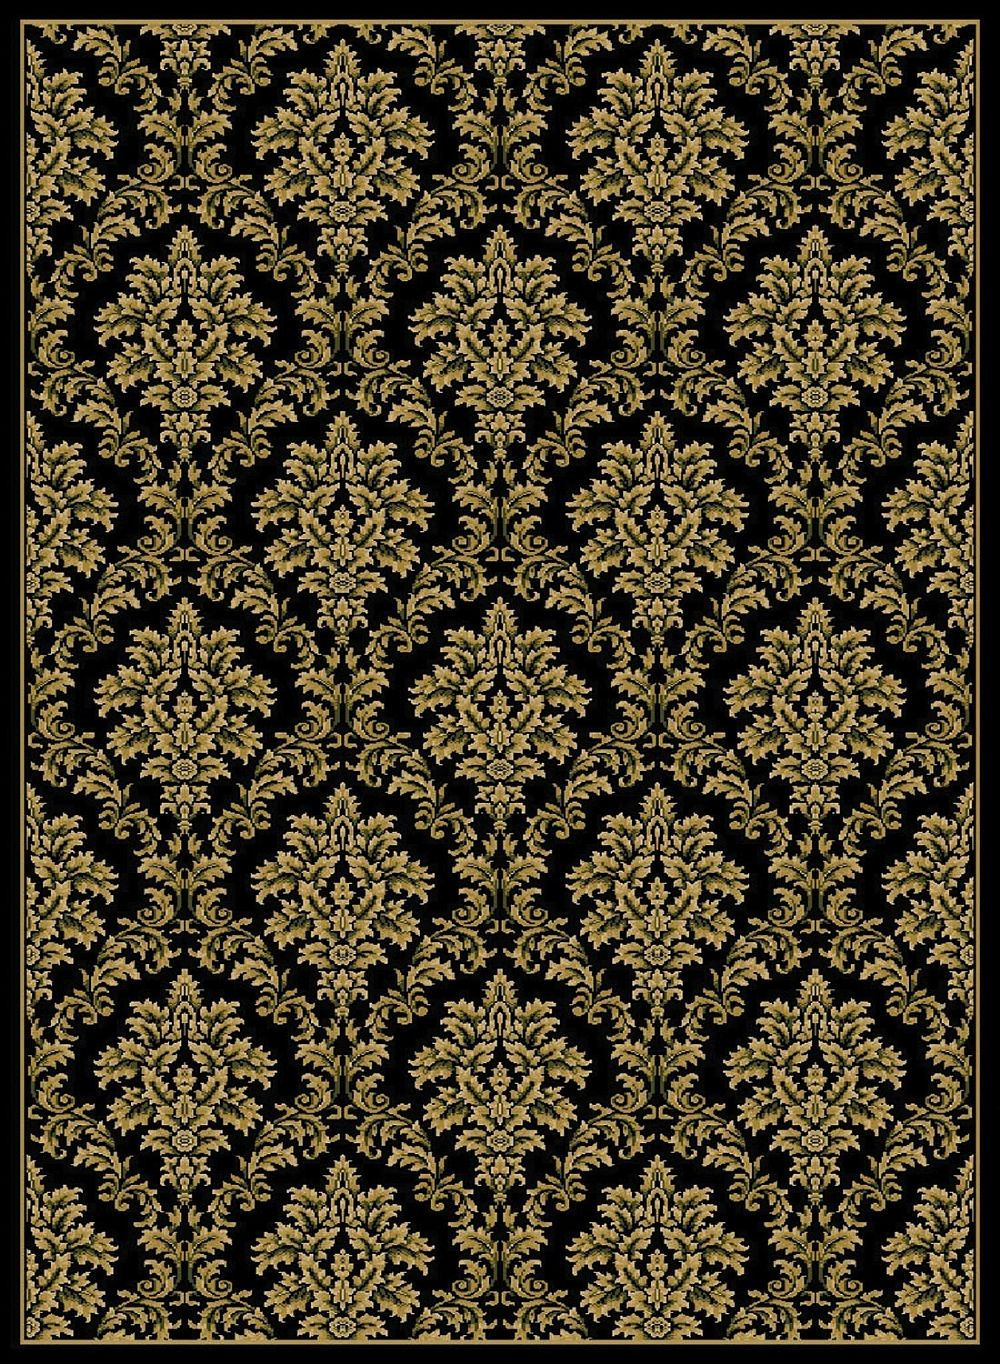 central oriental gallery 4-piece sets (18x3, 110x611, 45x611, 67x96) transitional area rug collection